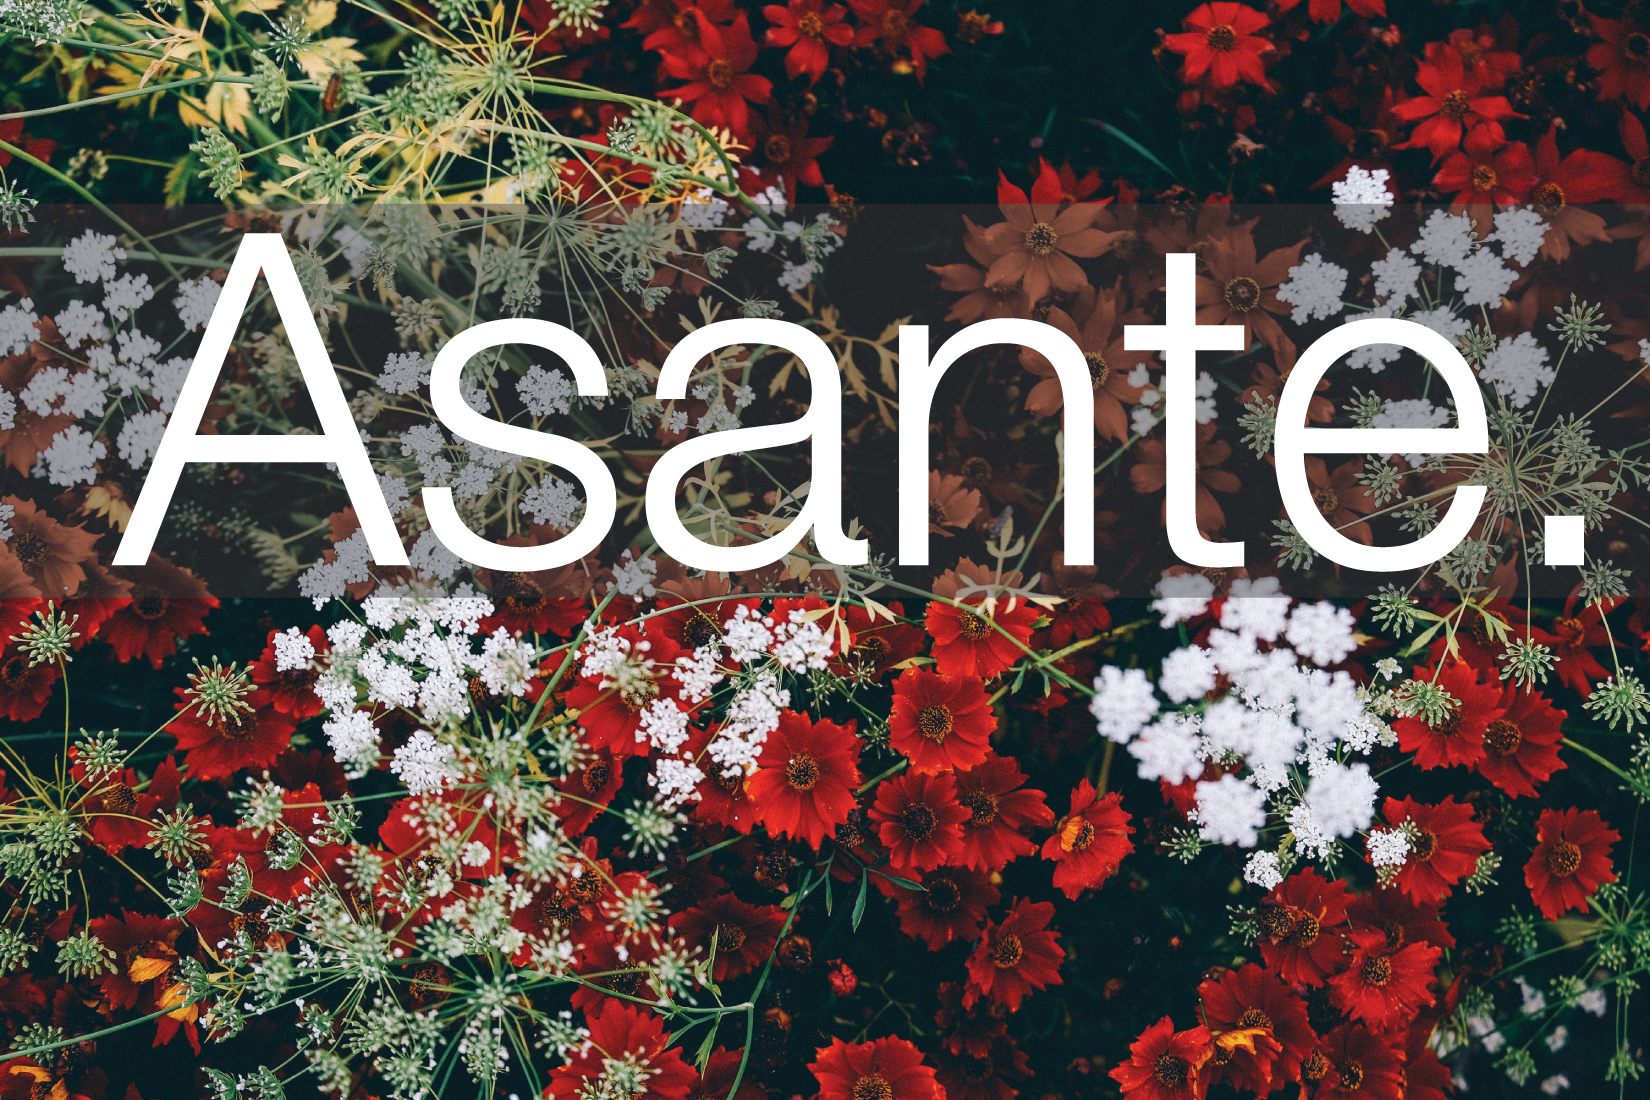 Asante is Swahili for Thank you